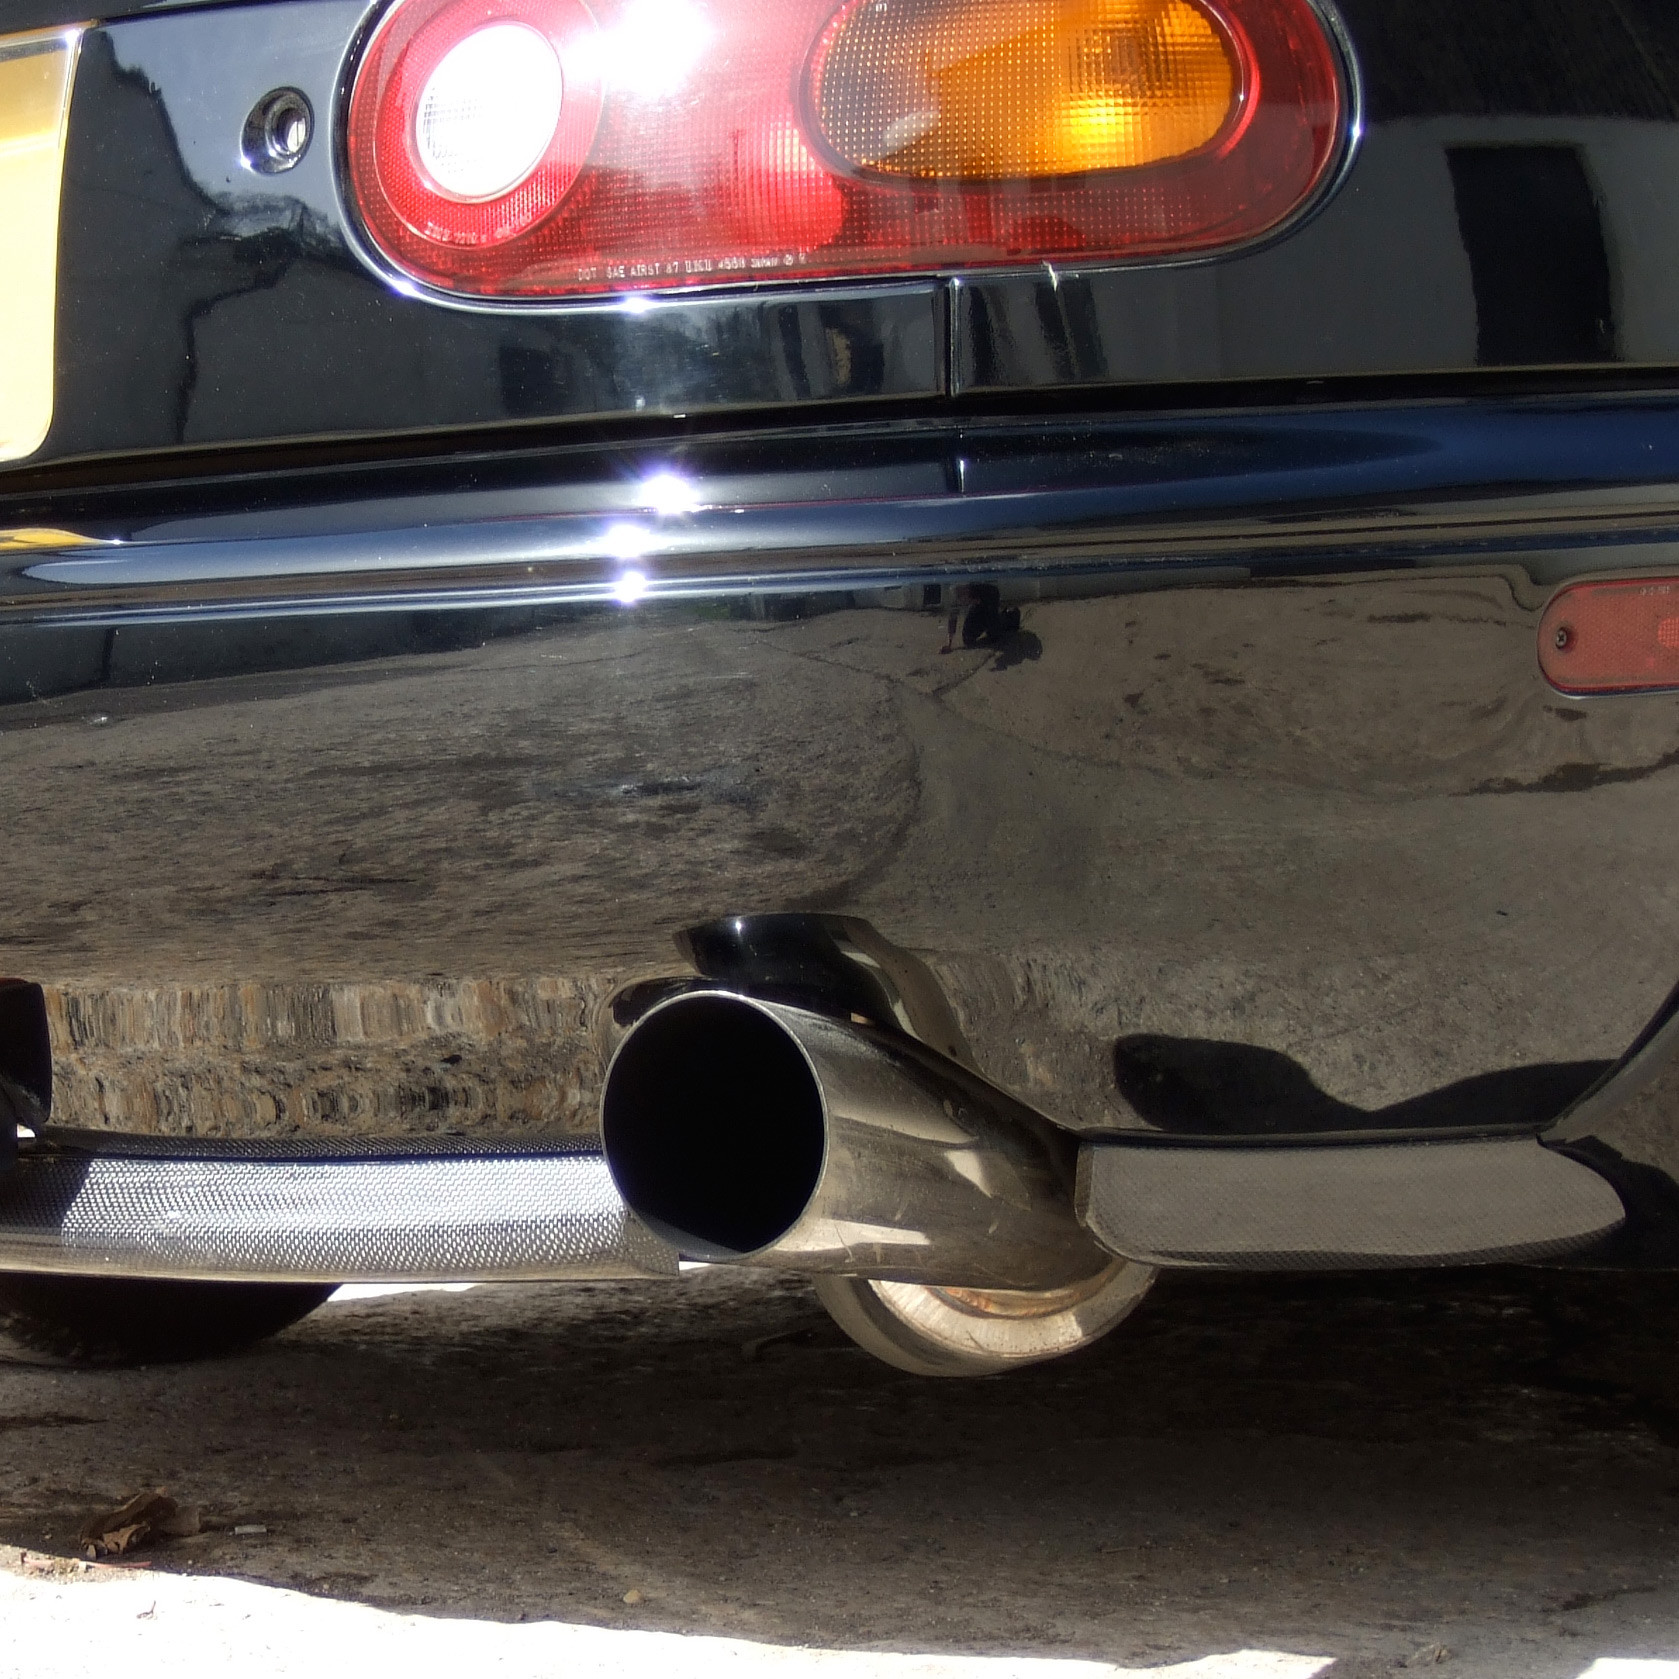 Rev9 oe style rear lip for miata mx5 mx 5 89 97 jdm